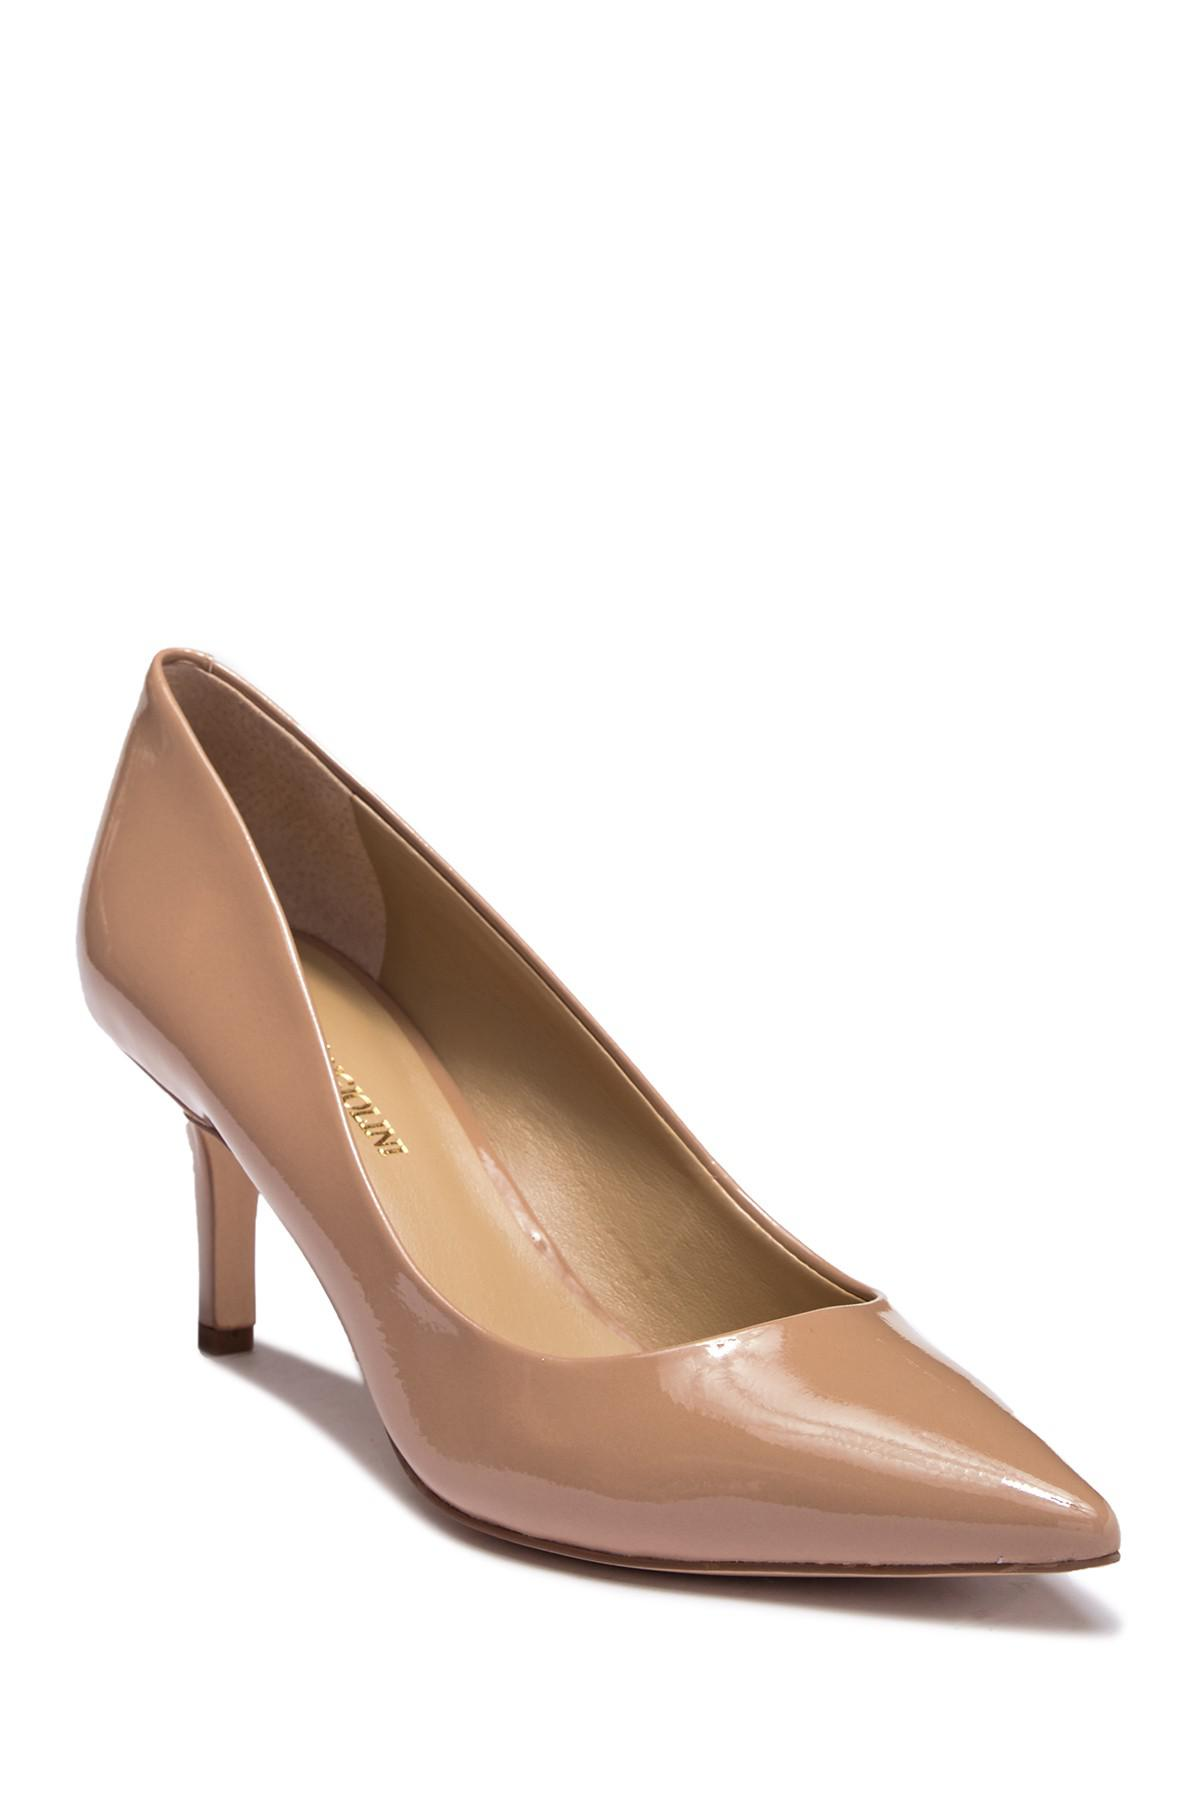 9542392bb7c Enzo Angiolini Darla Pump in Natural - Save 19% - Lyst